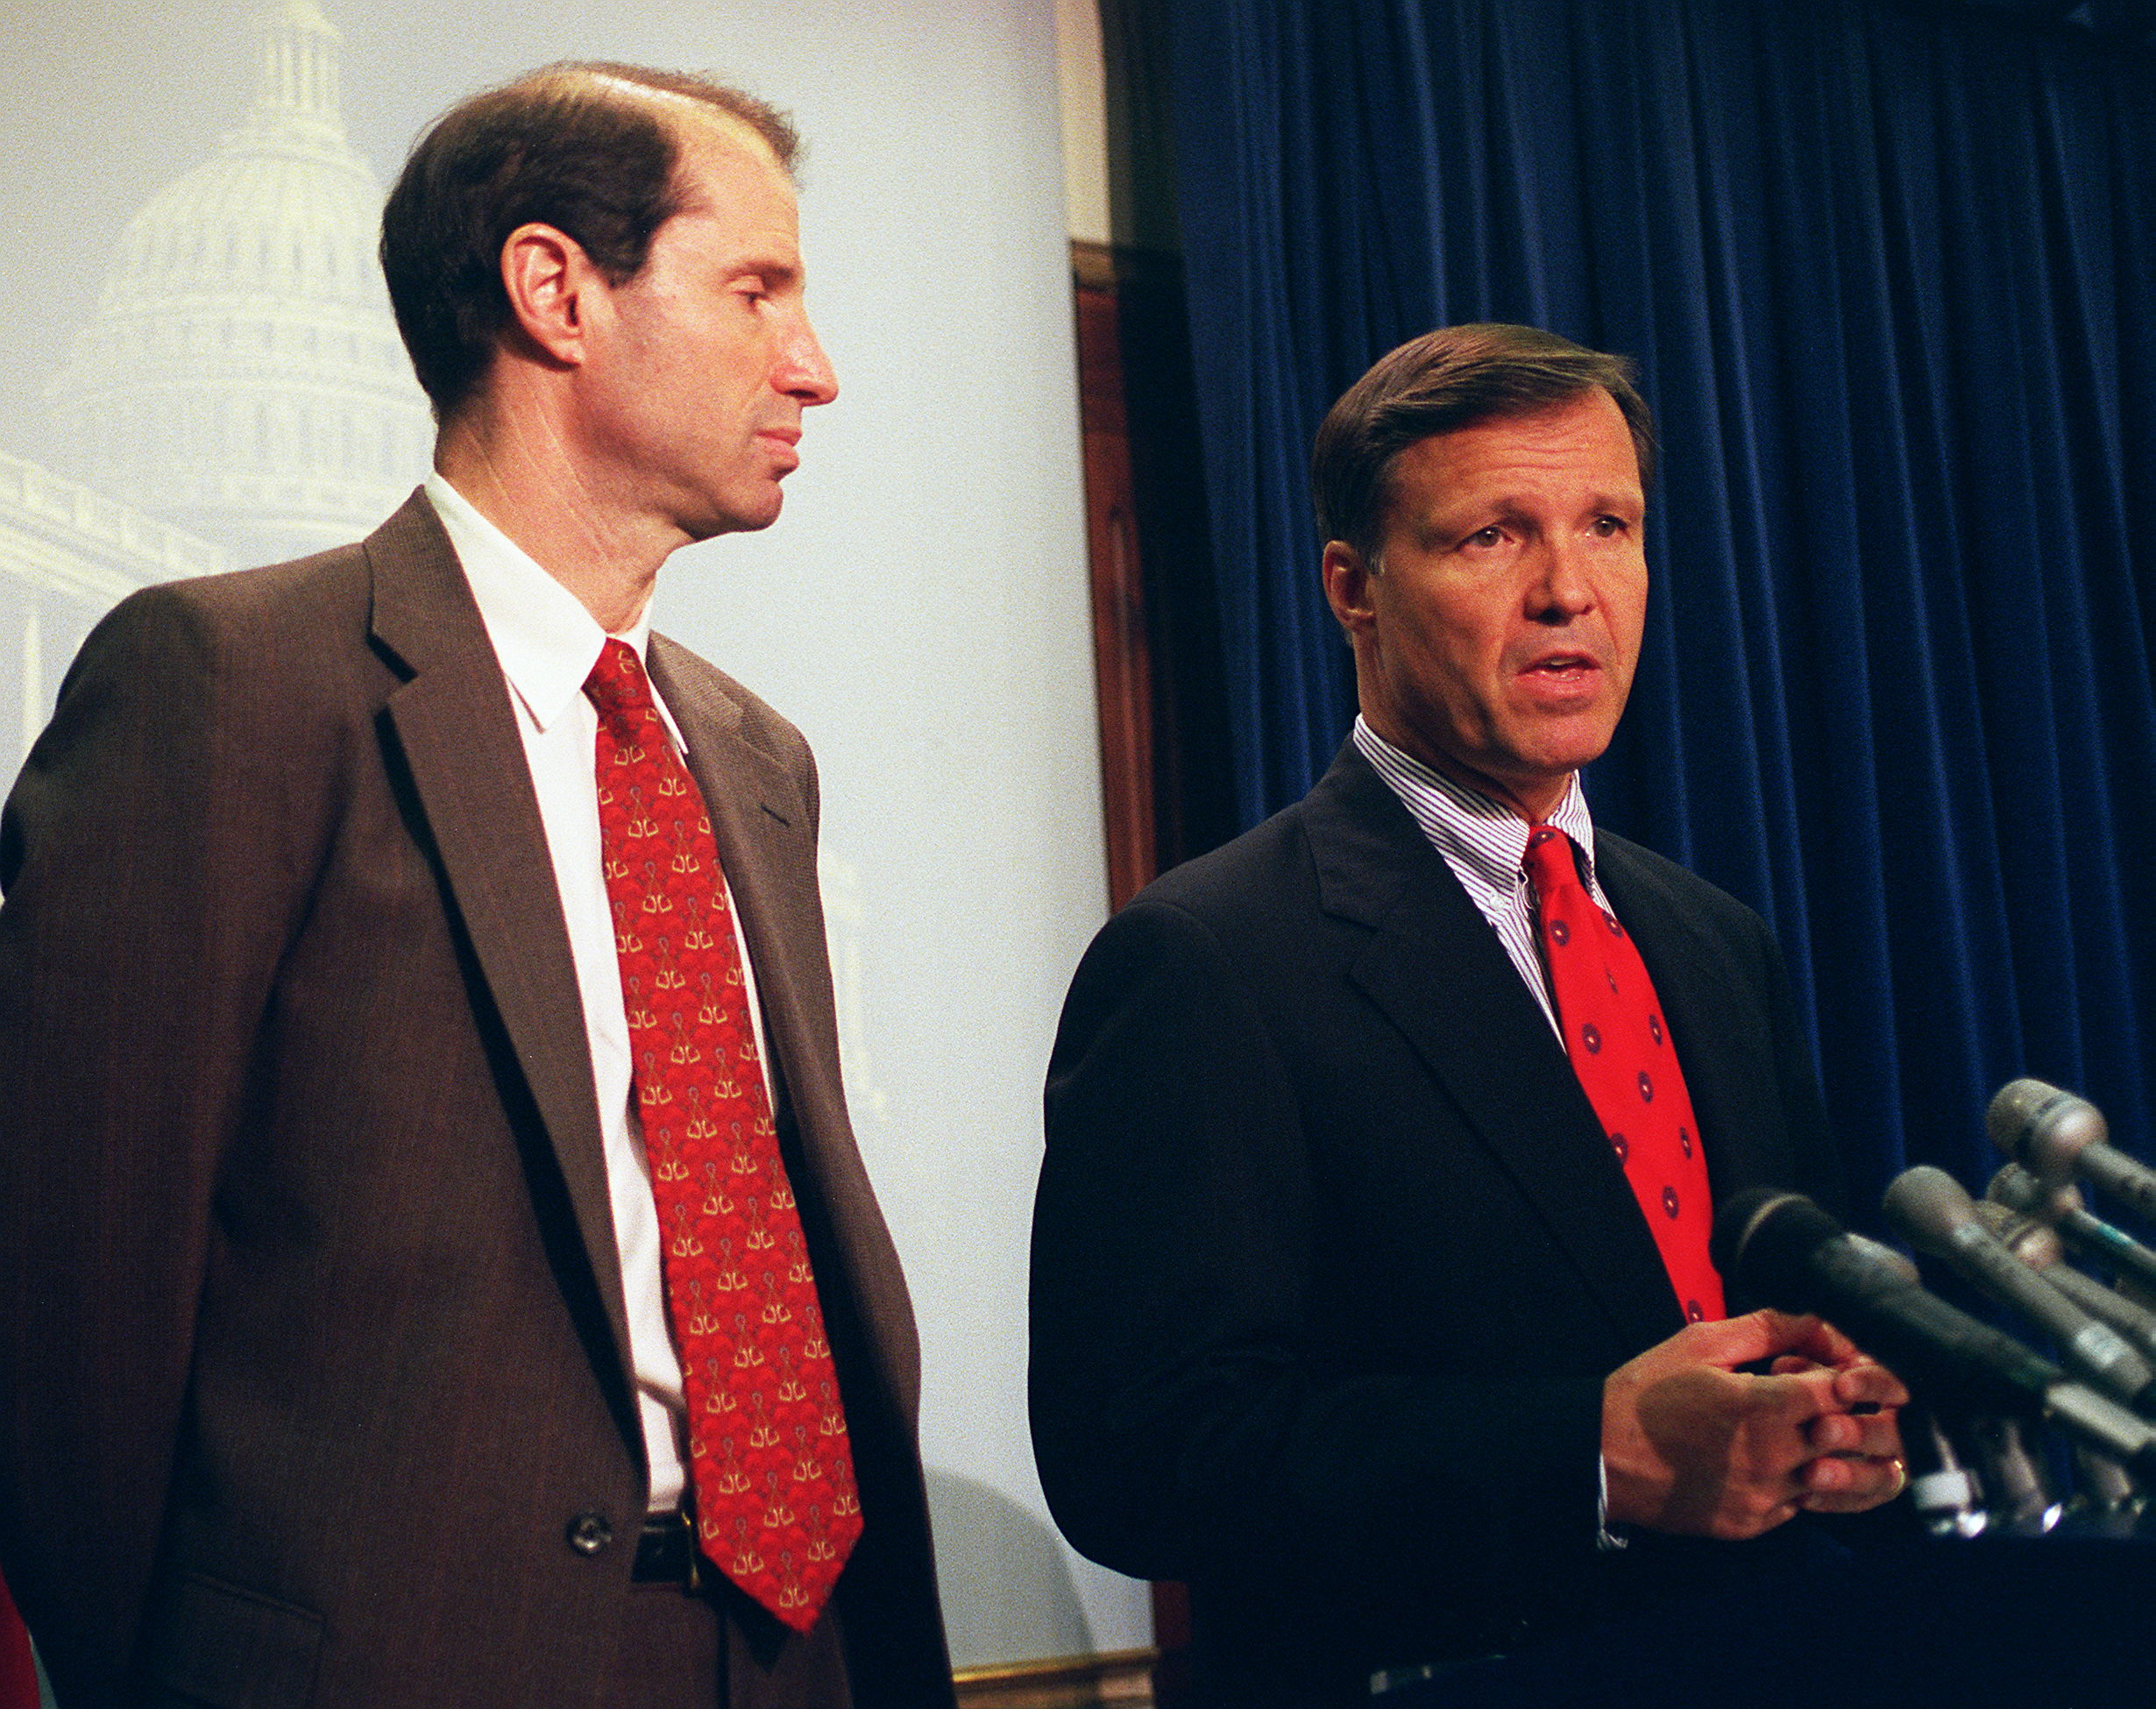 Sen. Ron Wyden (D-Ore.) and Rep. Christopher Cox (R-Calif.) in 1997, a year after Section 230 was enacted.